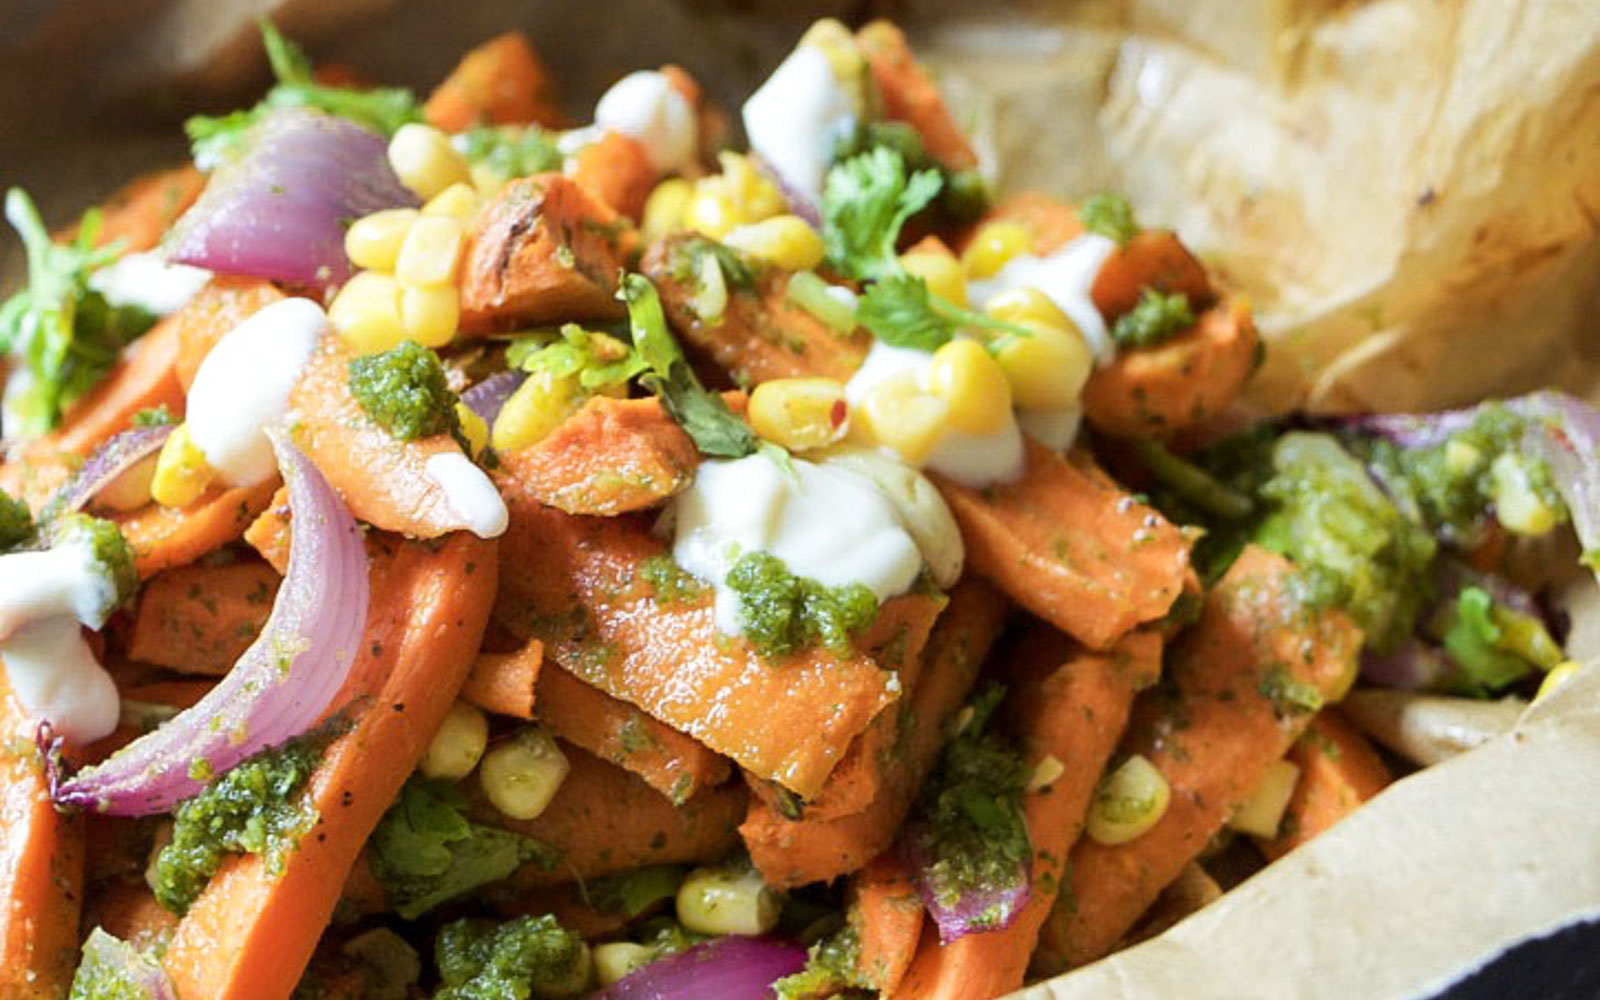 Vegan Grain-Free Roasted Carrot Salad With Charred Scallion Cilantro Pesto